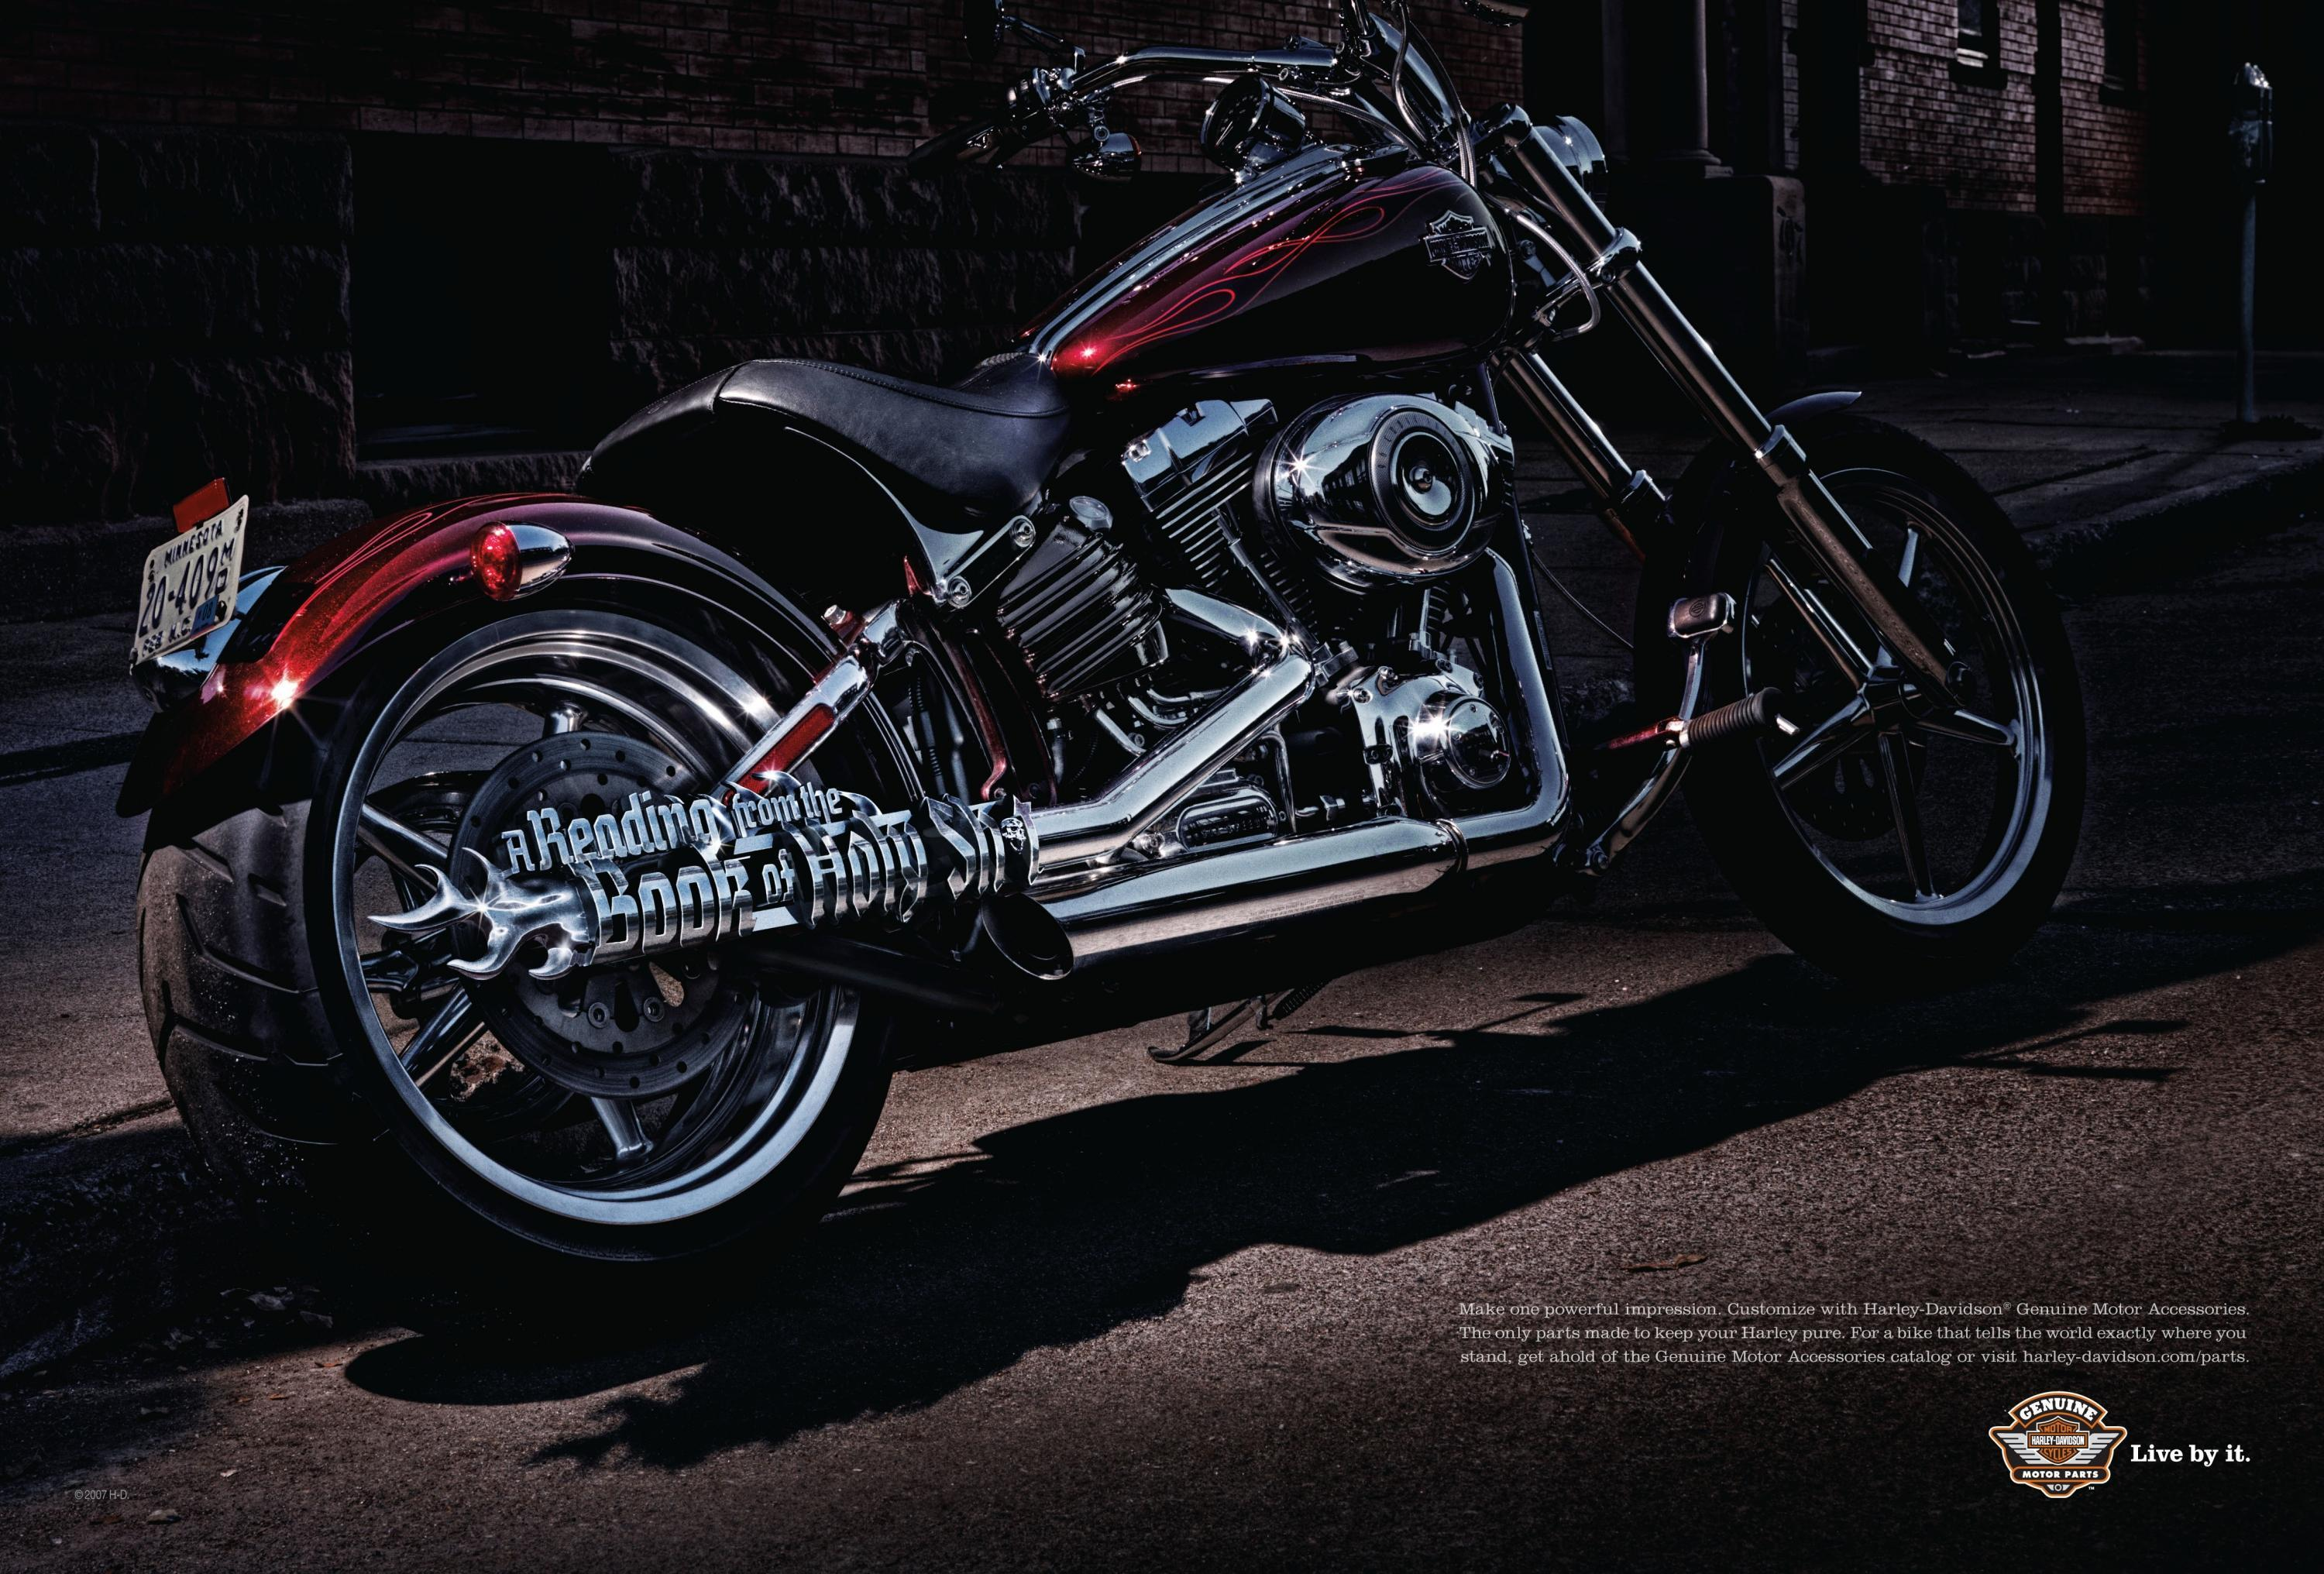 Adeevee | Only selected creativity - Harley-Davidson Parts